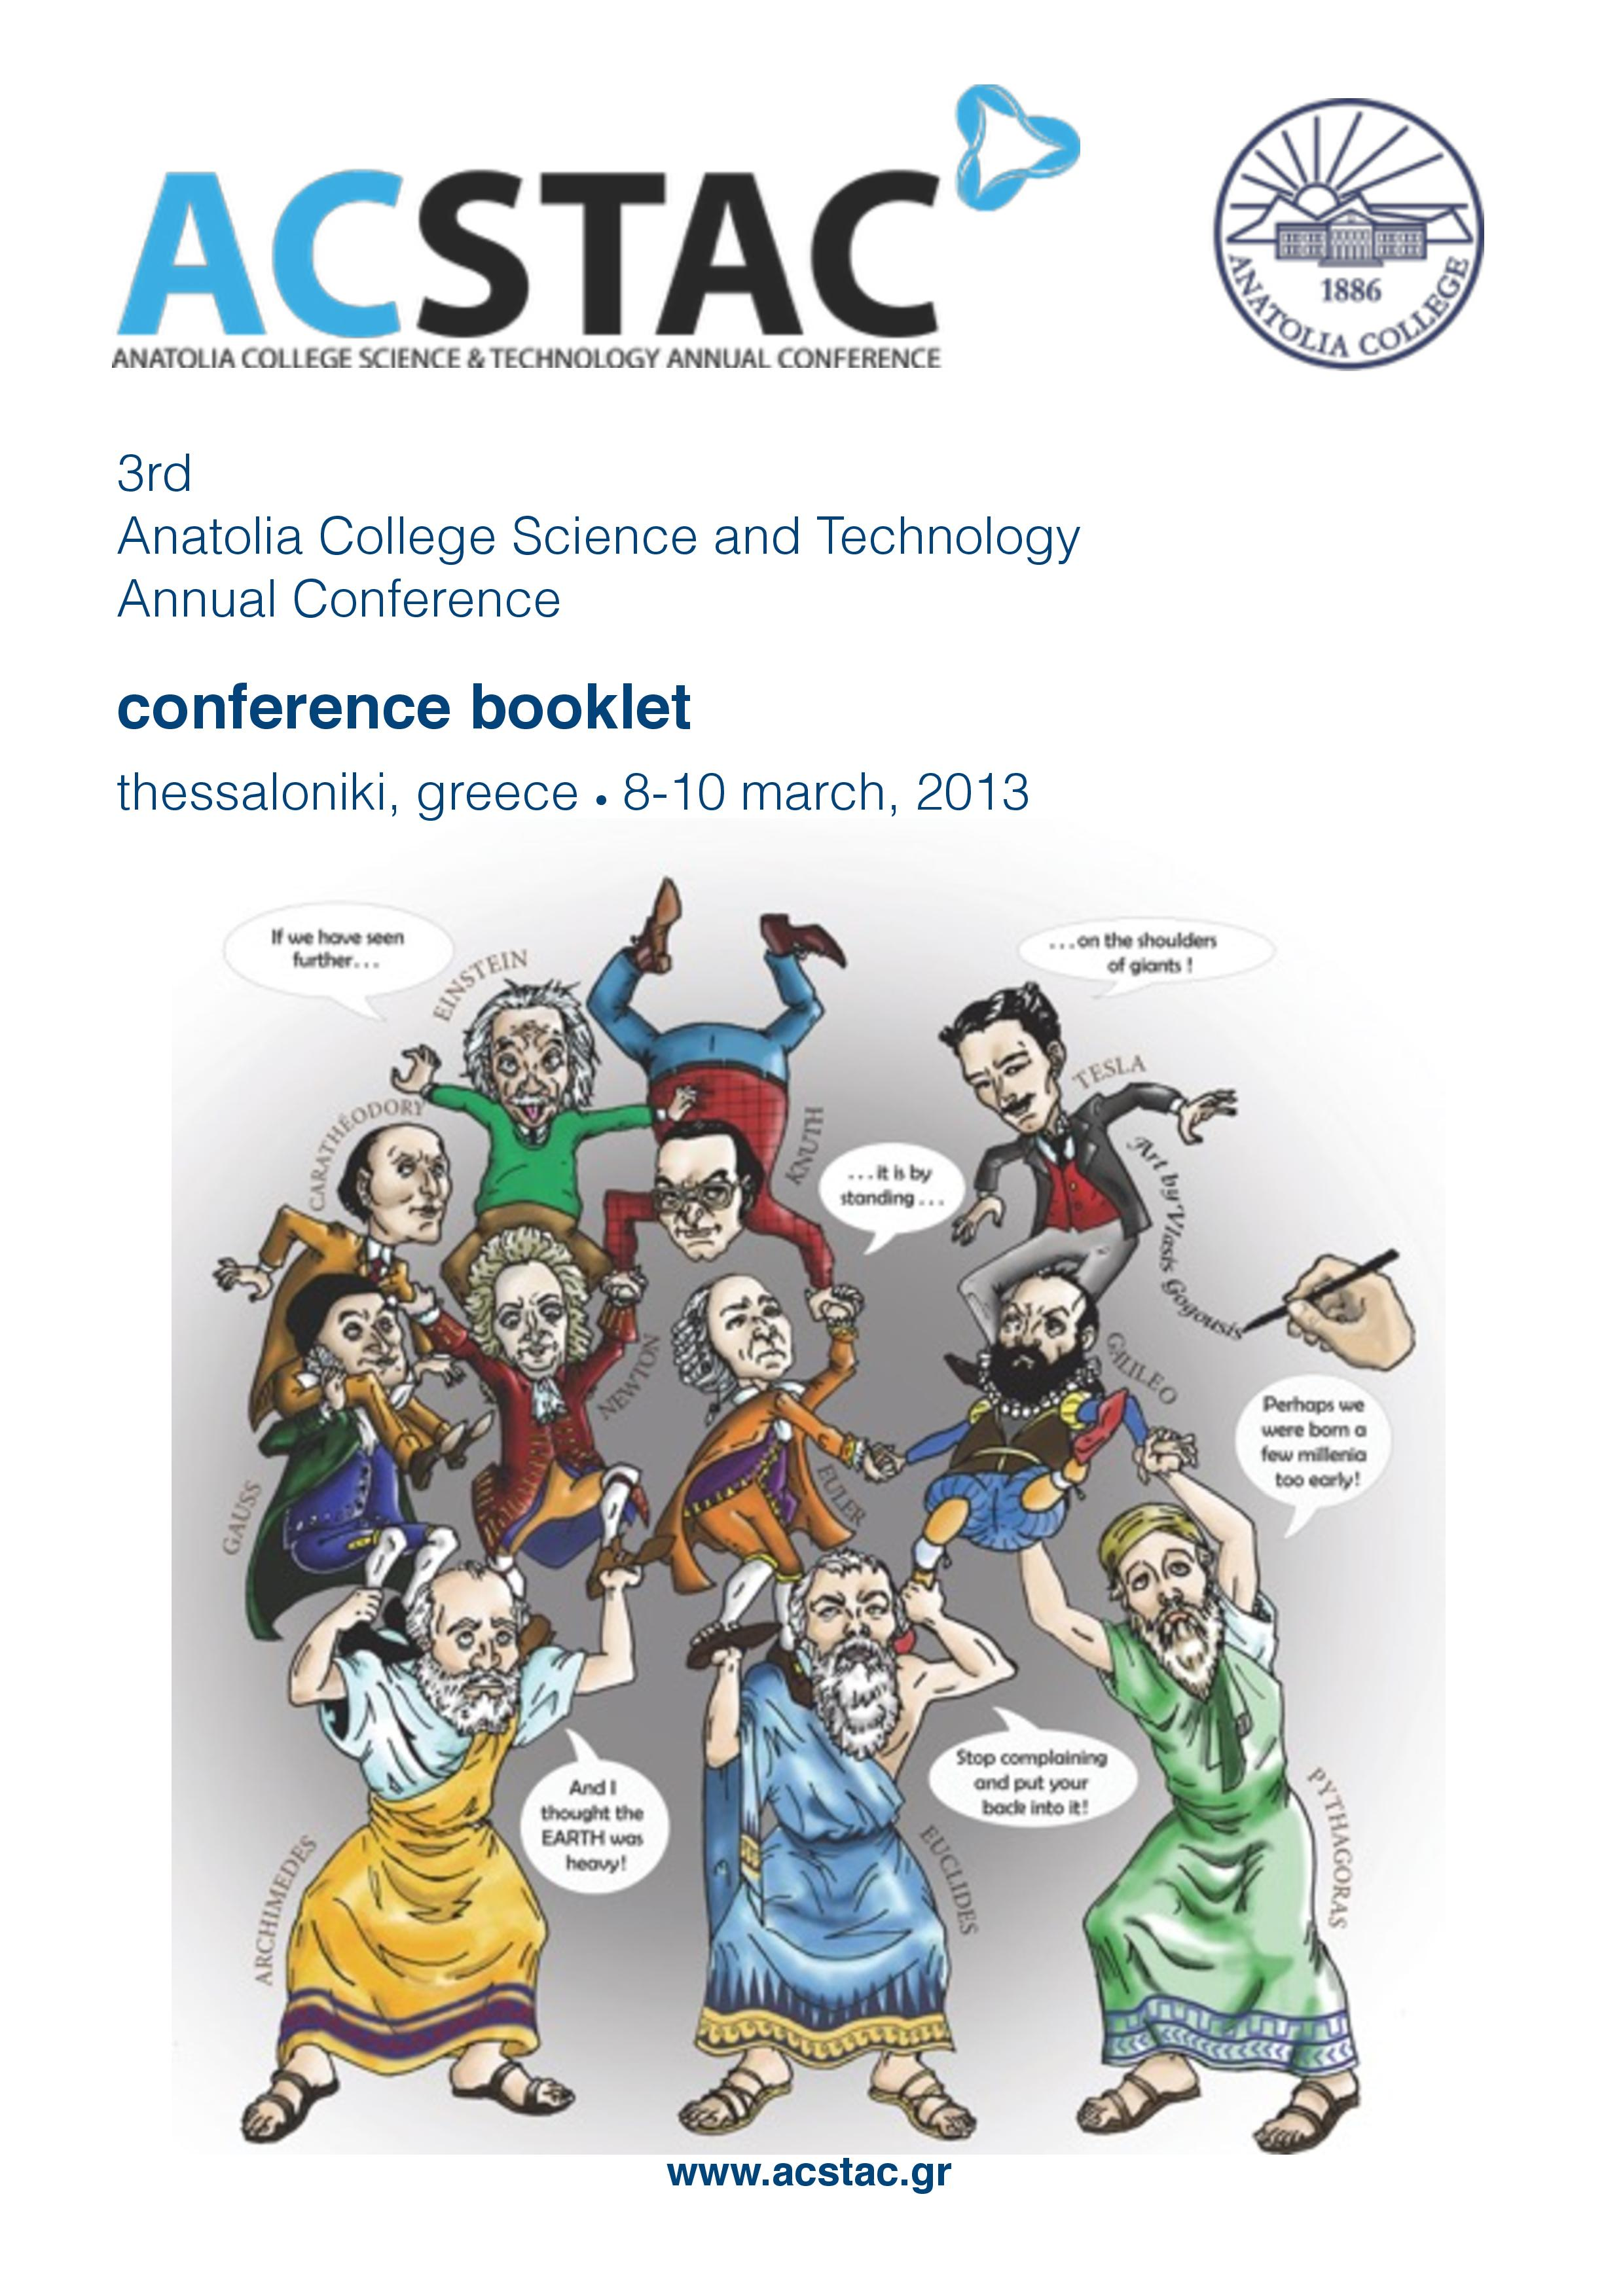 ACSTAC conference booklet 2013 pdf page 001 1